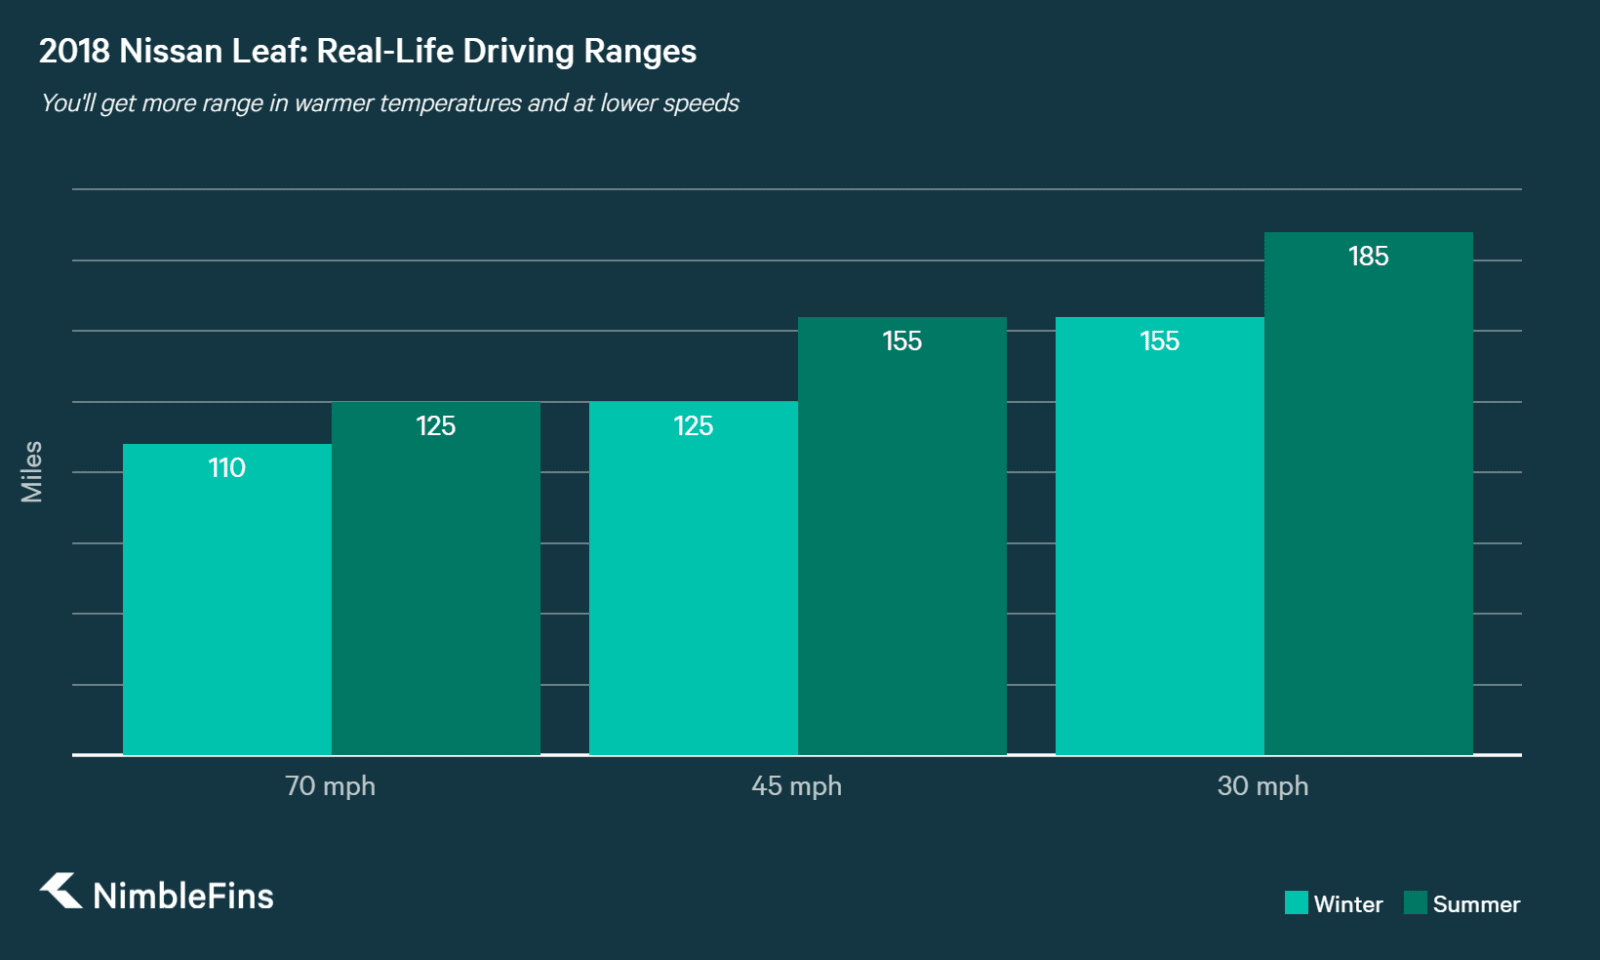 chart showing driving ranges for nissan leaf